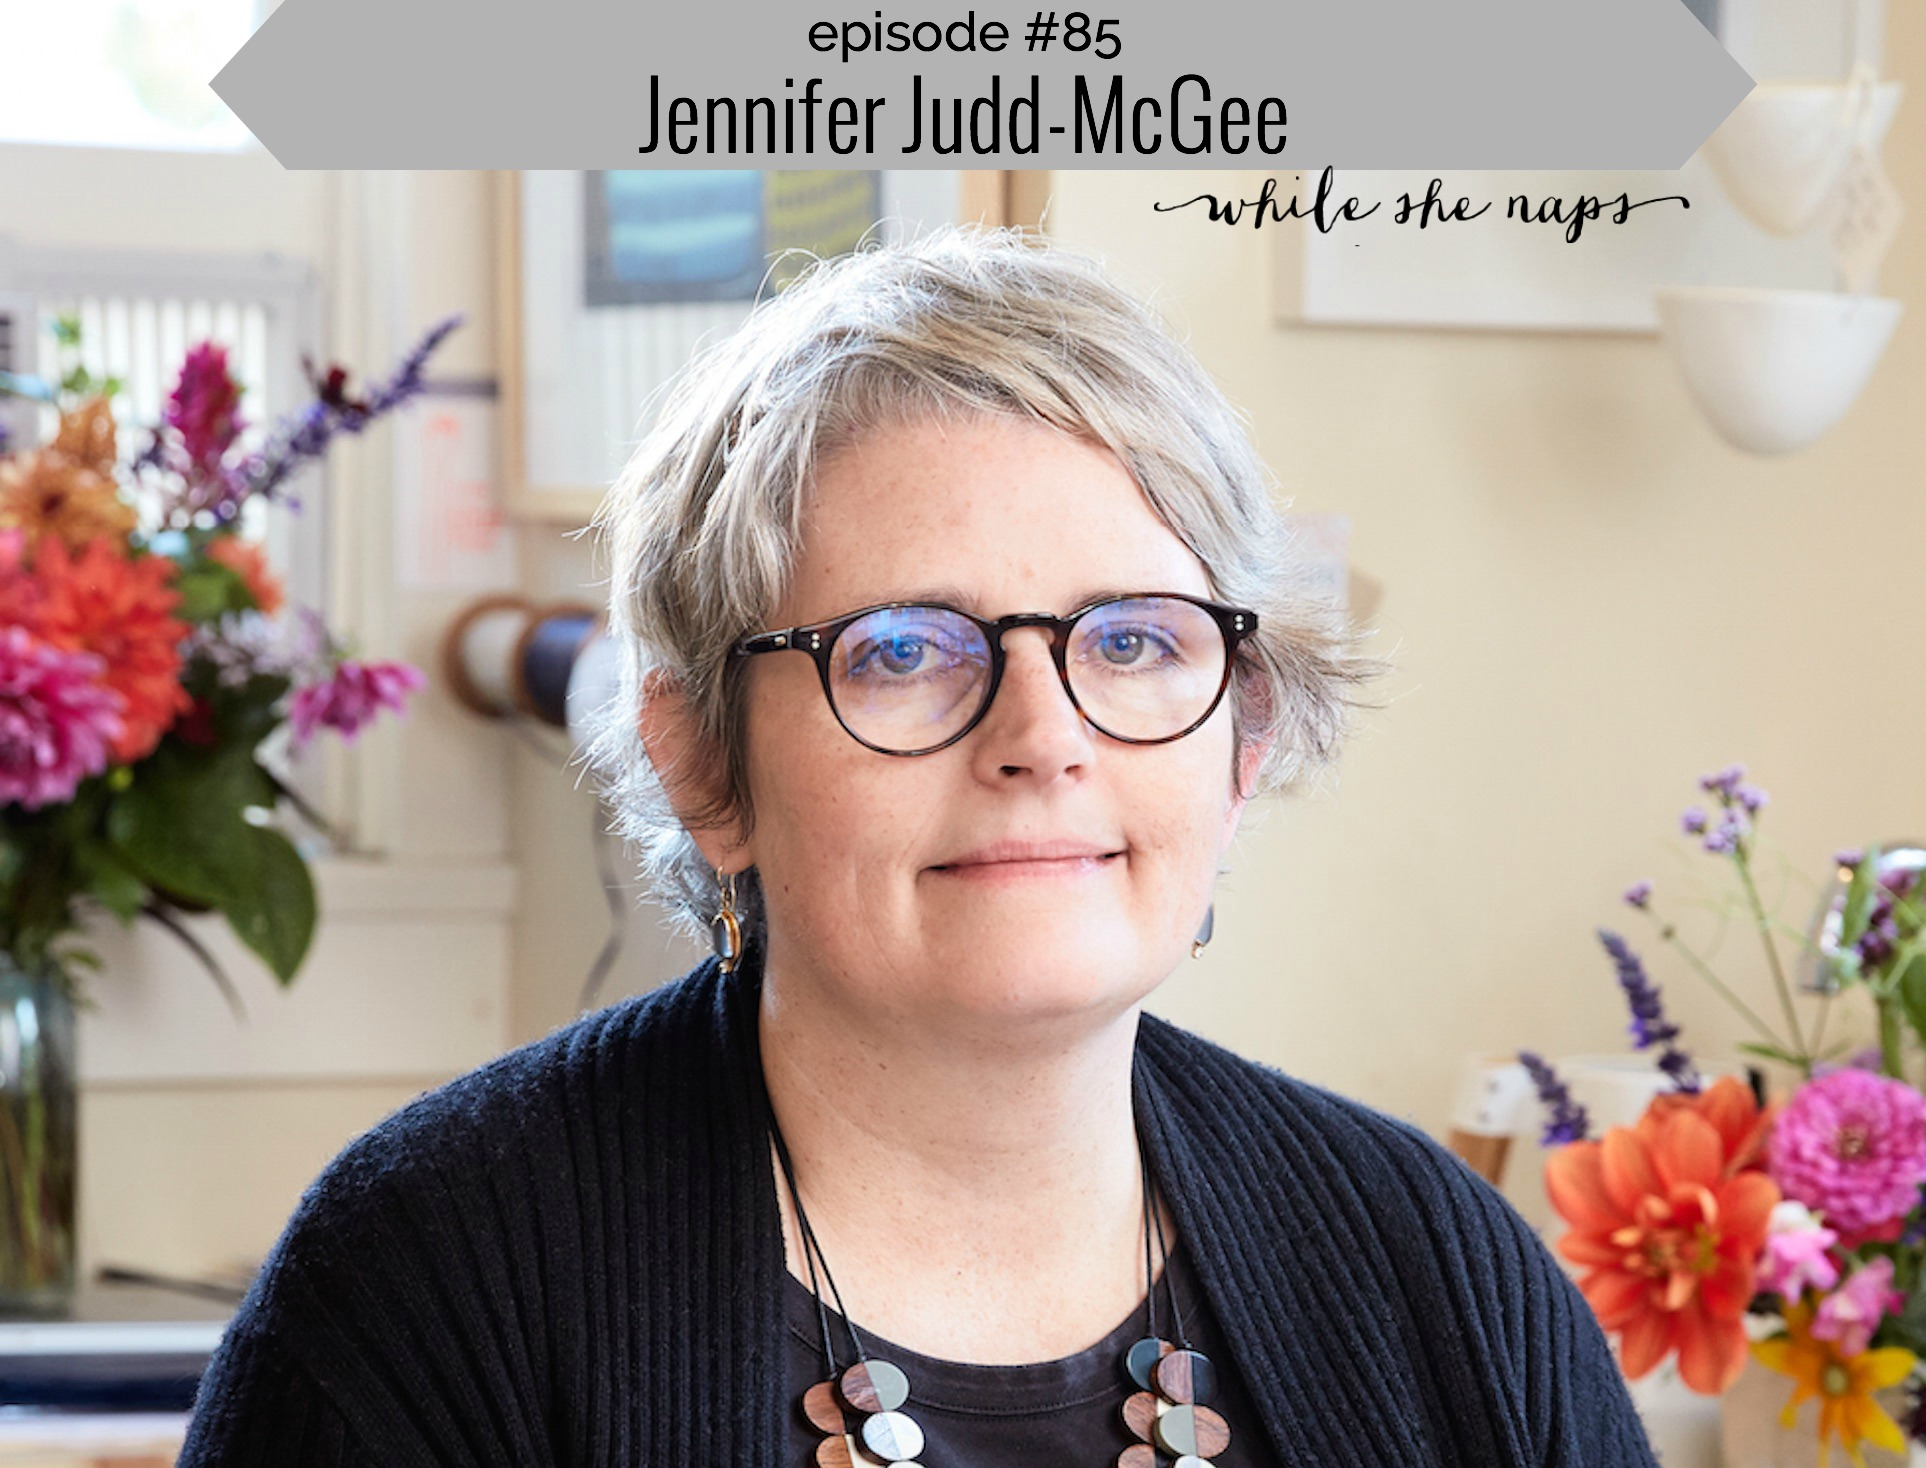 jennifer-judd-mcgee-episode-85